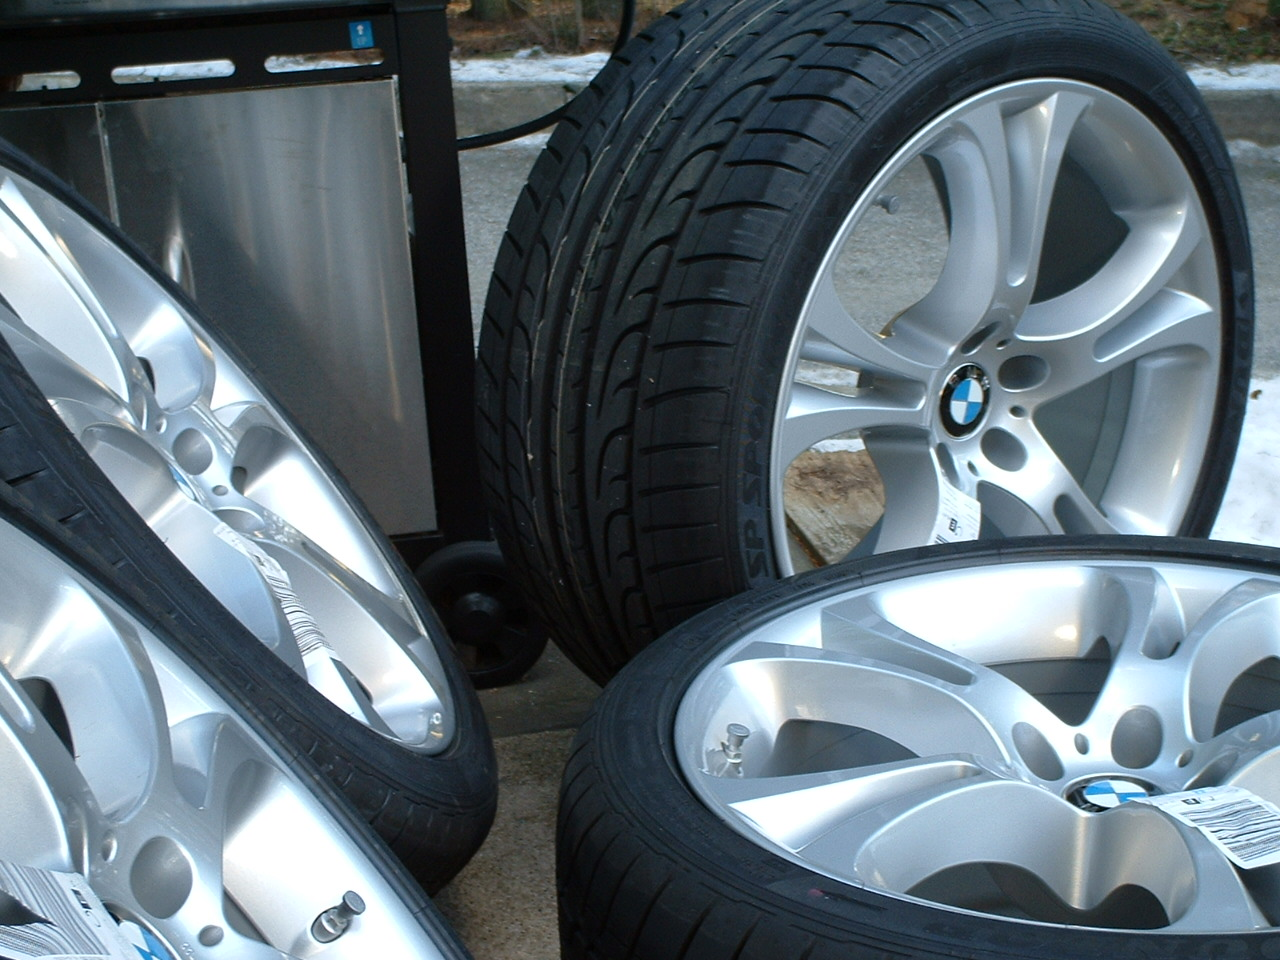 to a new BMW wheel style,